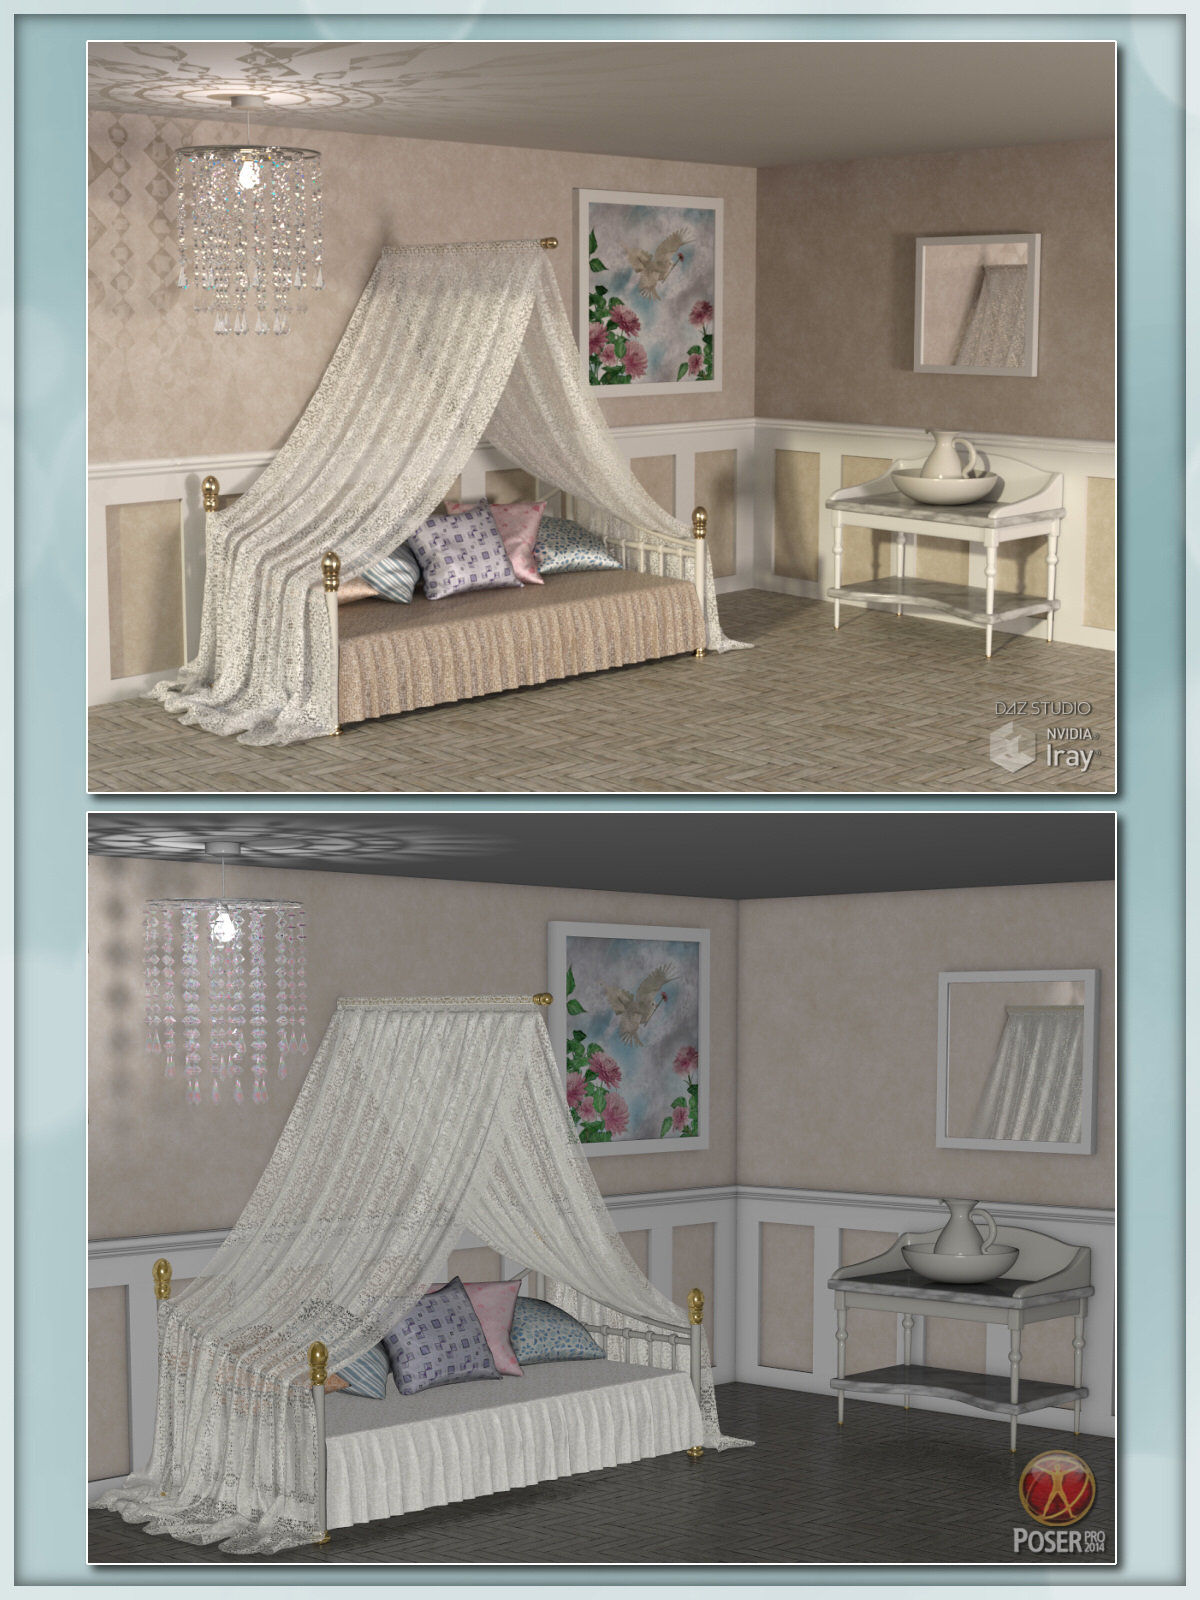 Daybed Prop Set - Poser and Daz Studio Bundle by Lully